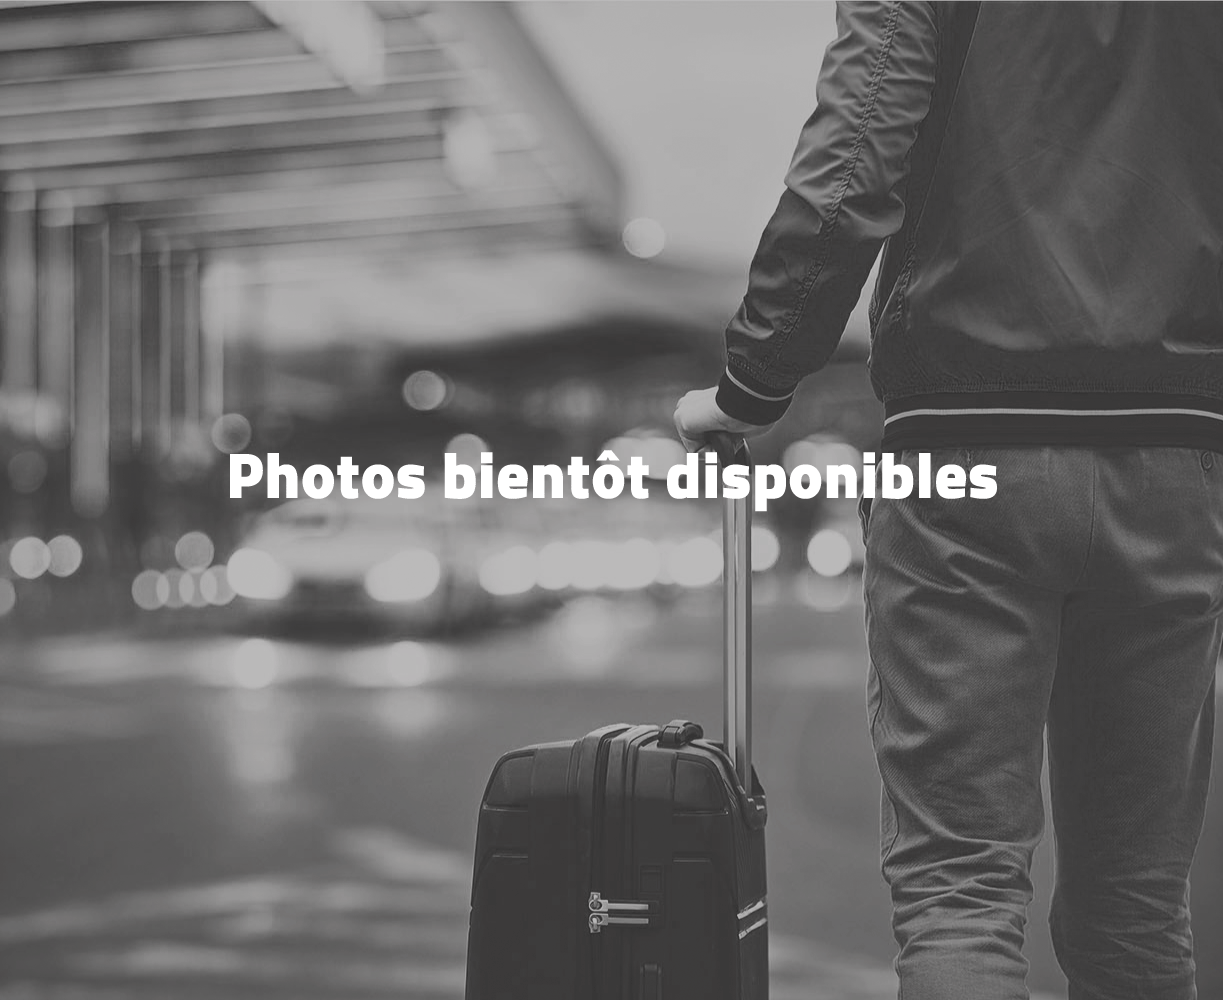 Photos bientôt disponibles